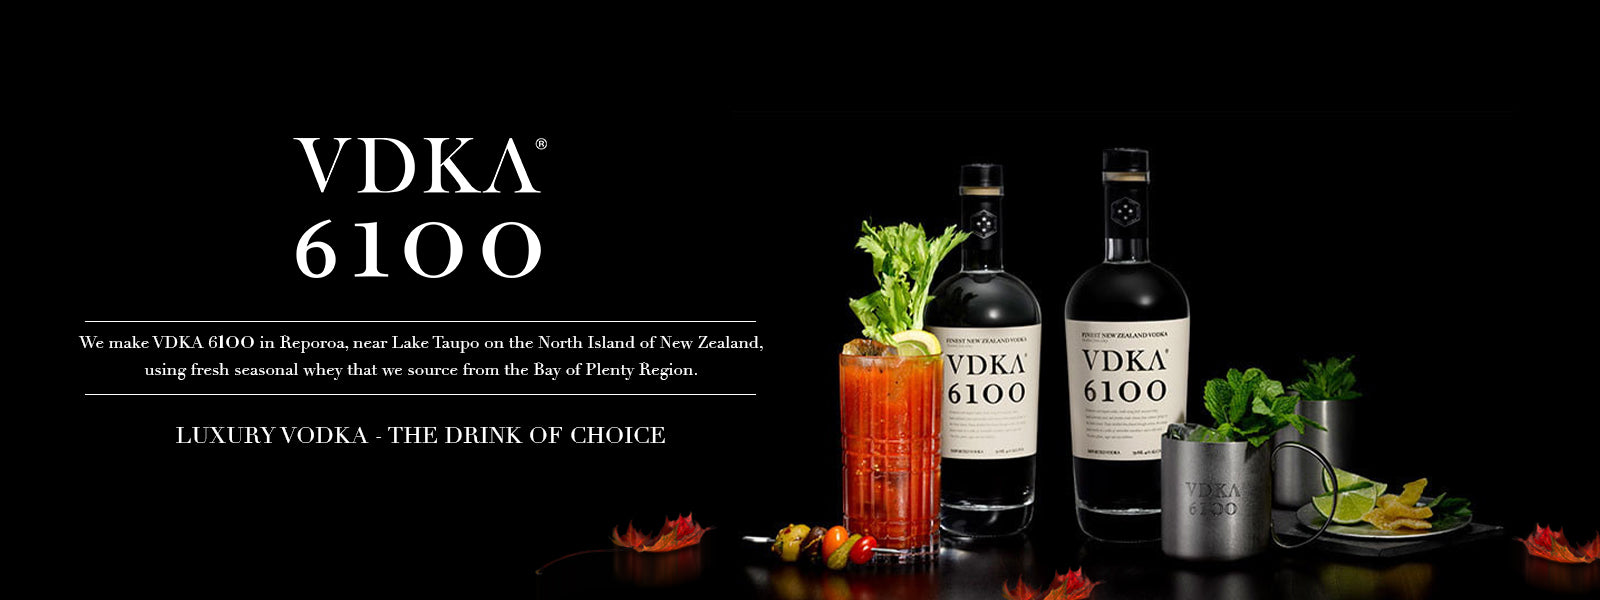 Buy VDKA 6100, Whiskey, Tequila, Vodka and Gin Online at CaskCartel.com